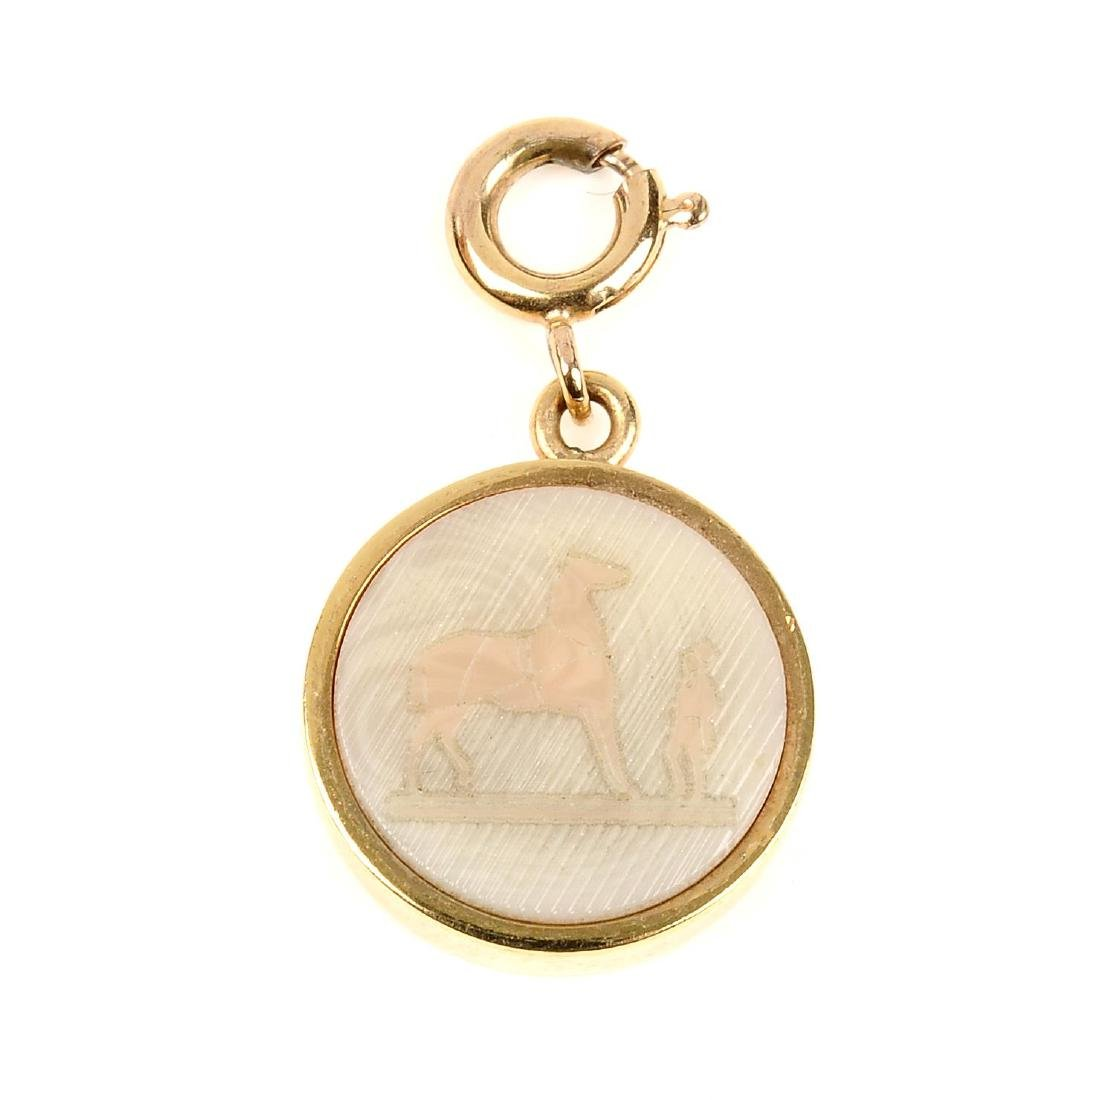 HERMÈS - a carved Intaglio charm. The small gold-tone